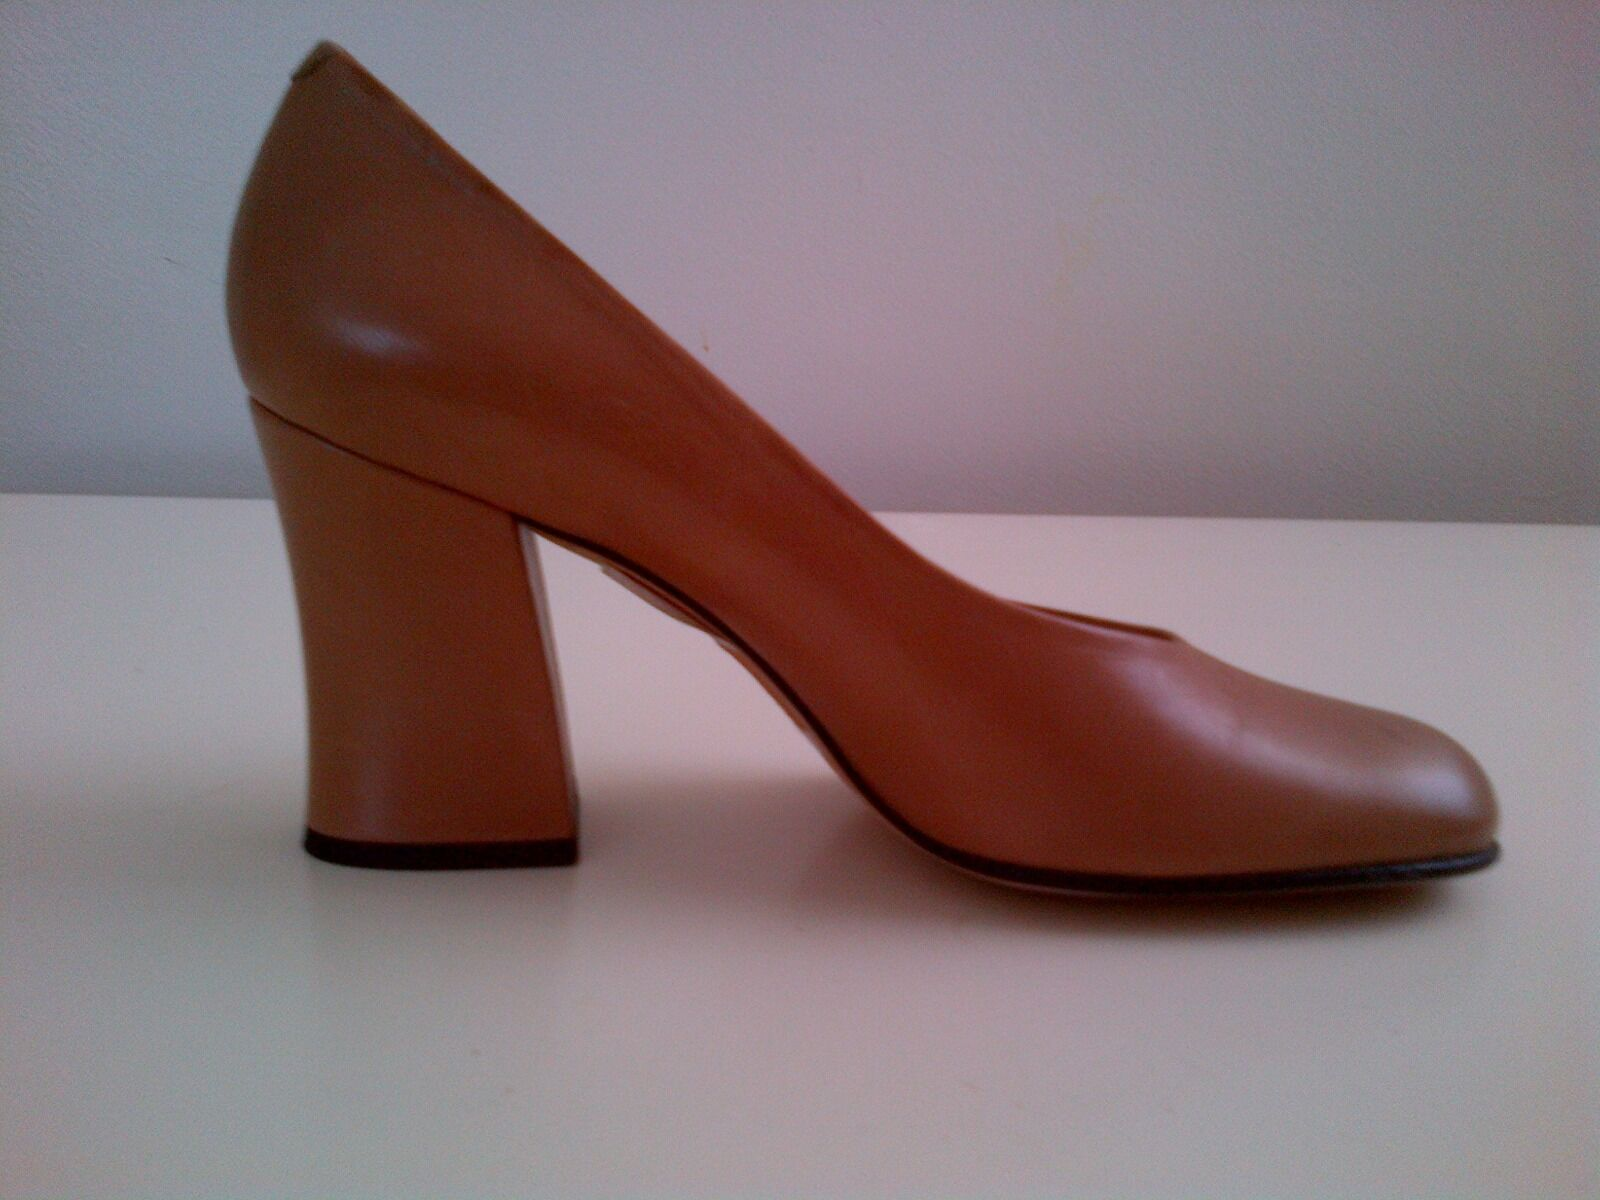 costo effettivo MARTINEZ VALERO  CAMEL BEIGE LEATHER LEATHER LEATHER FLARE HEEL PUMPS Dimensione 6 - NEW  vendita outlet